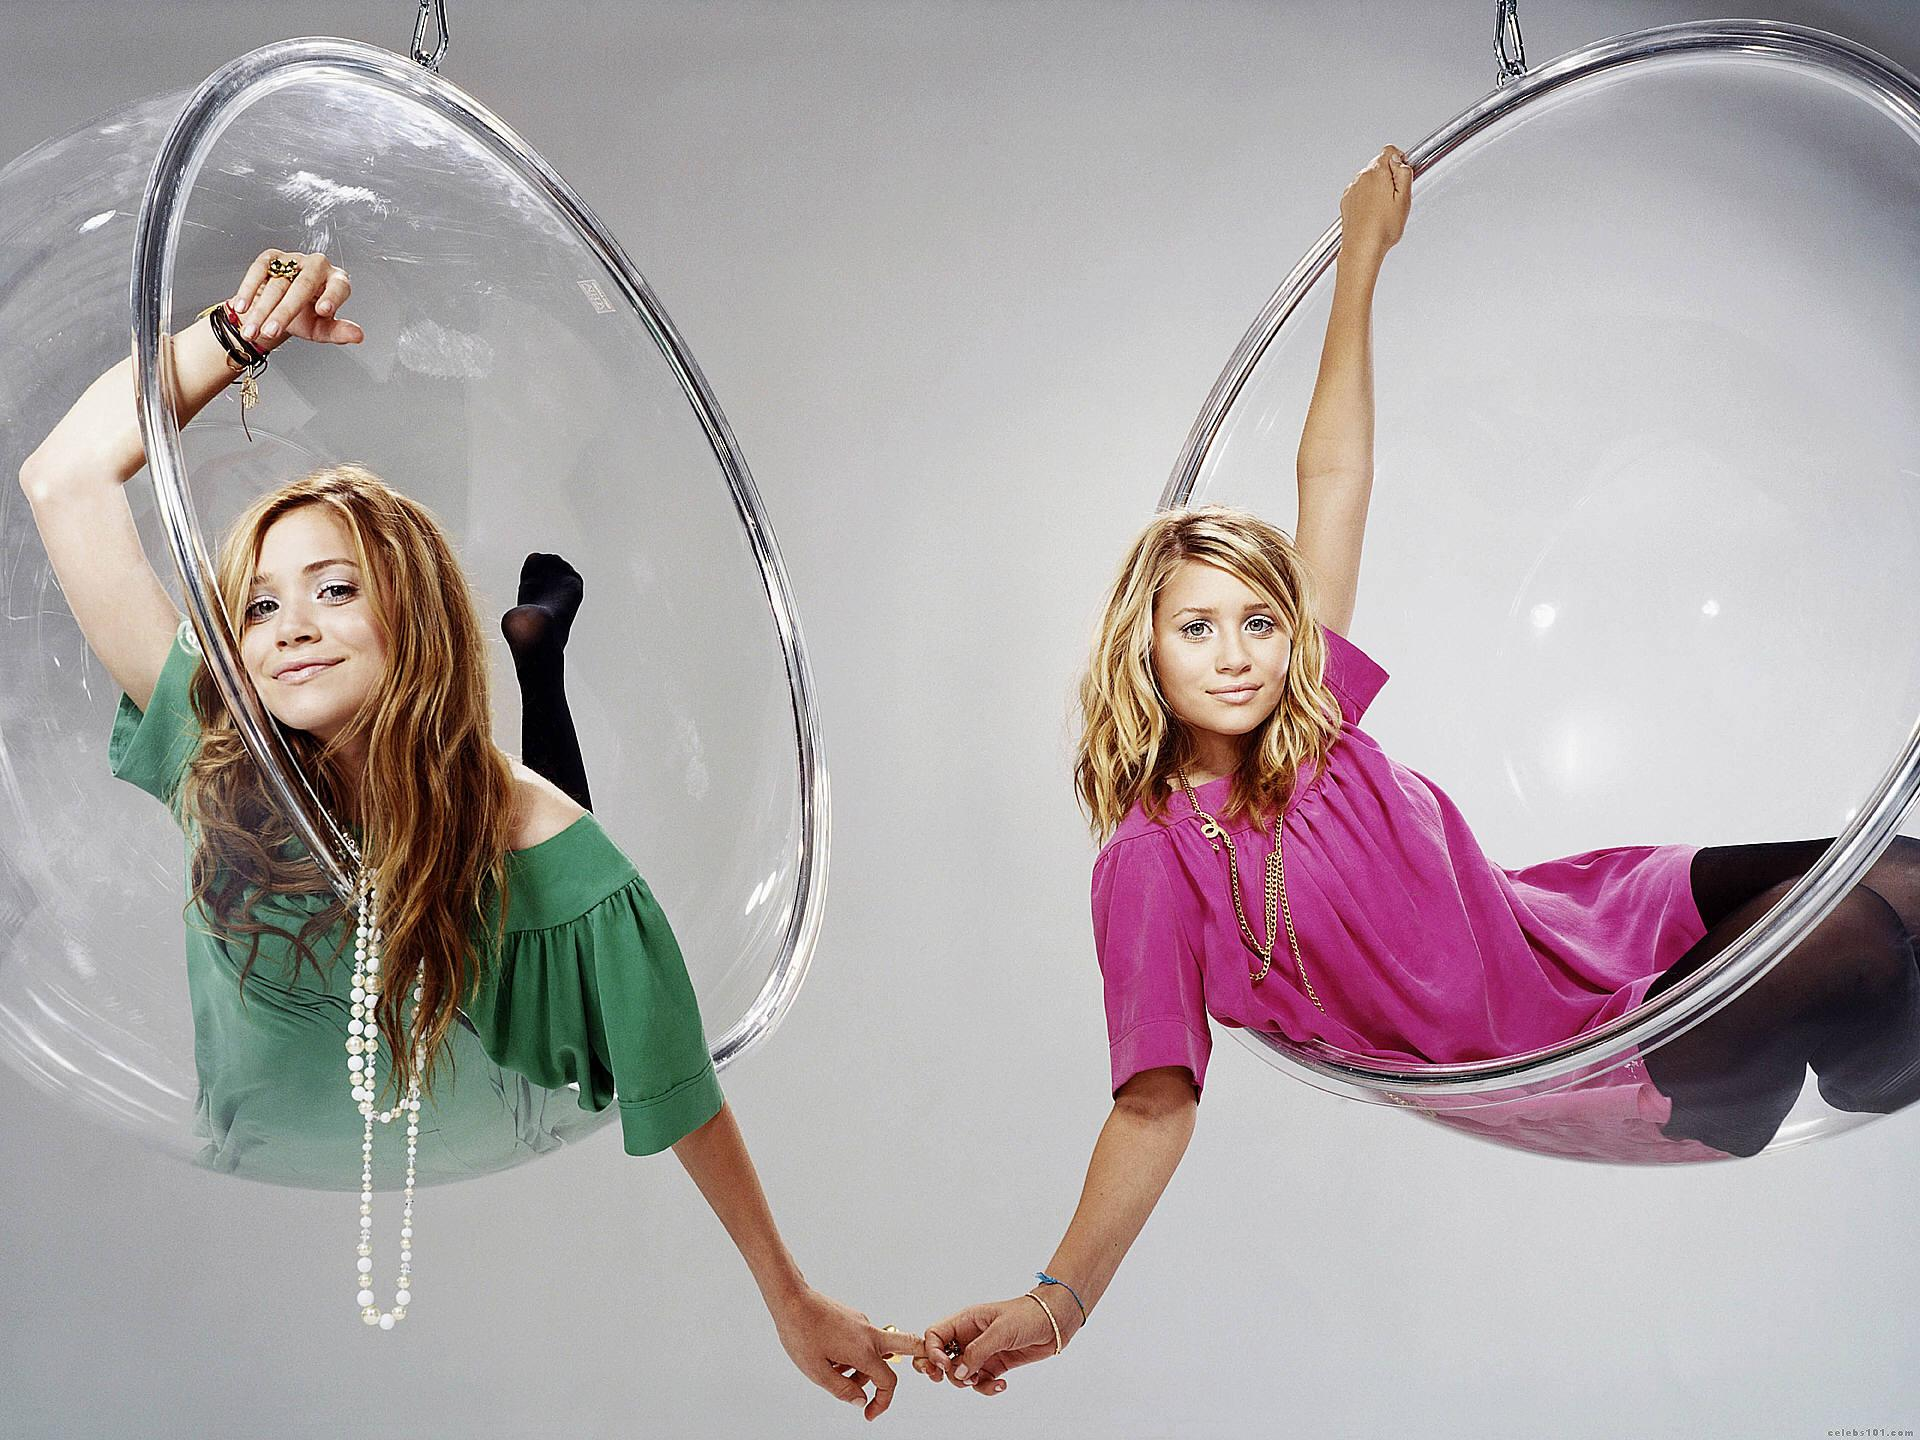 Olsen Twins High quality wallpaper size 1920x1440 of Olsen Twins 1920x1440